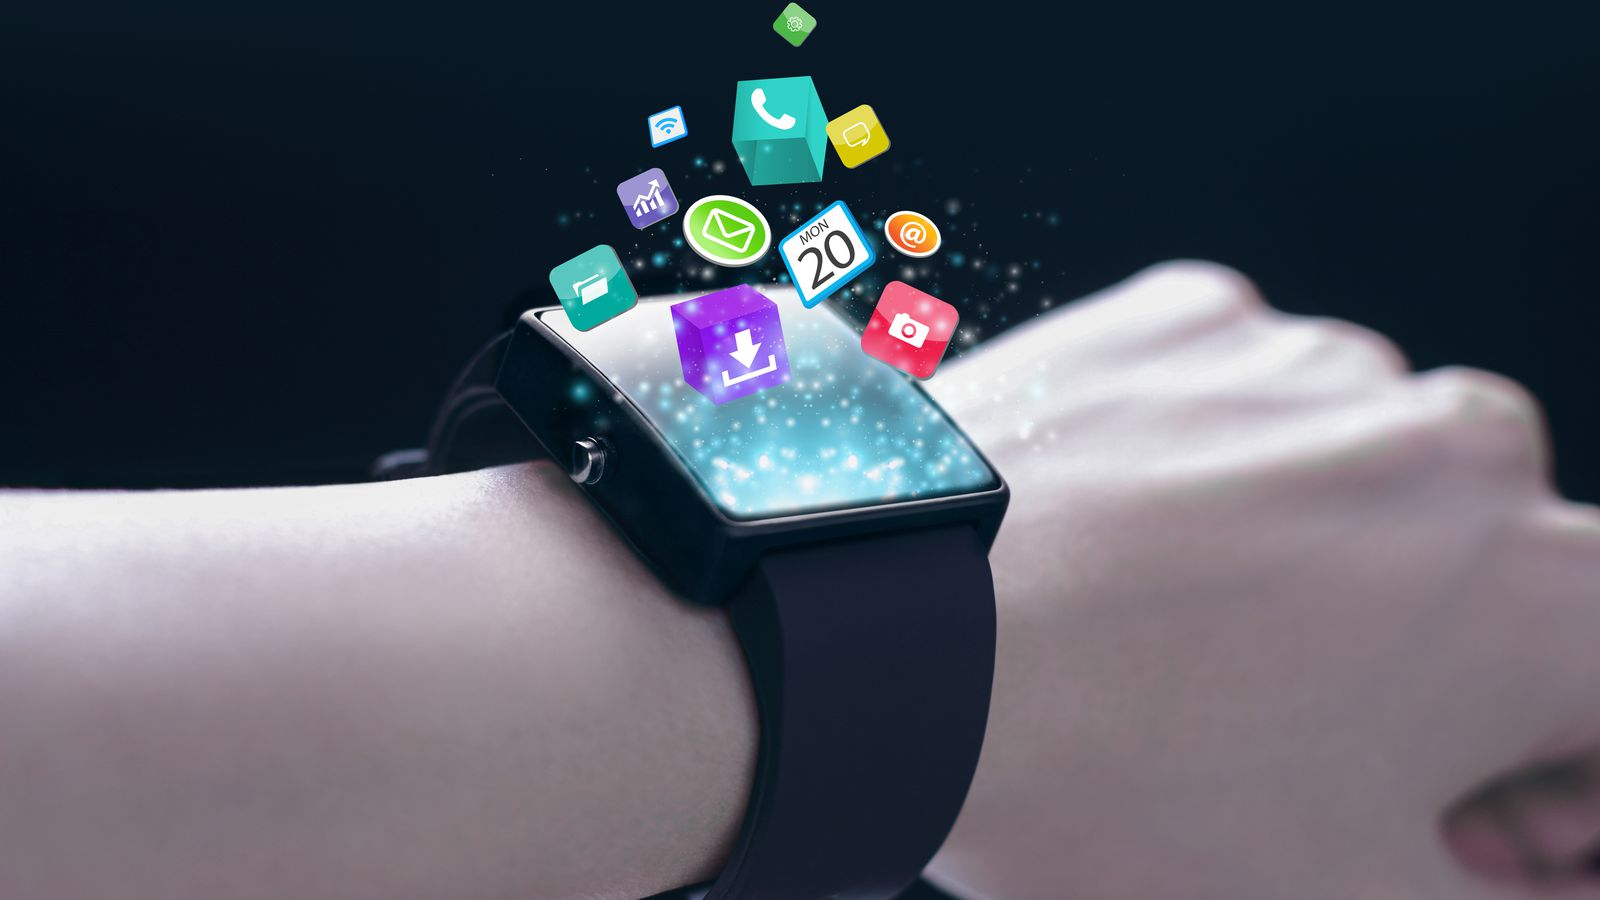 Will Smartwatches Ever Become the General-purpose Wearables We were Told They'd Be?